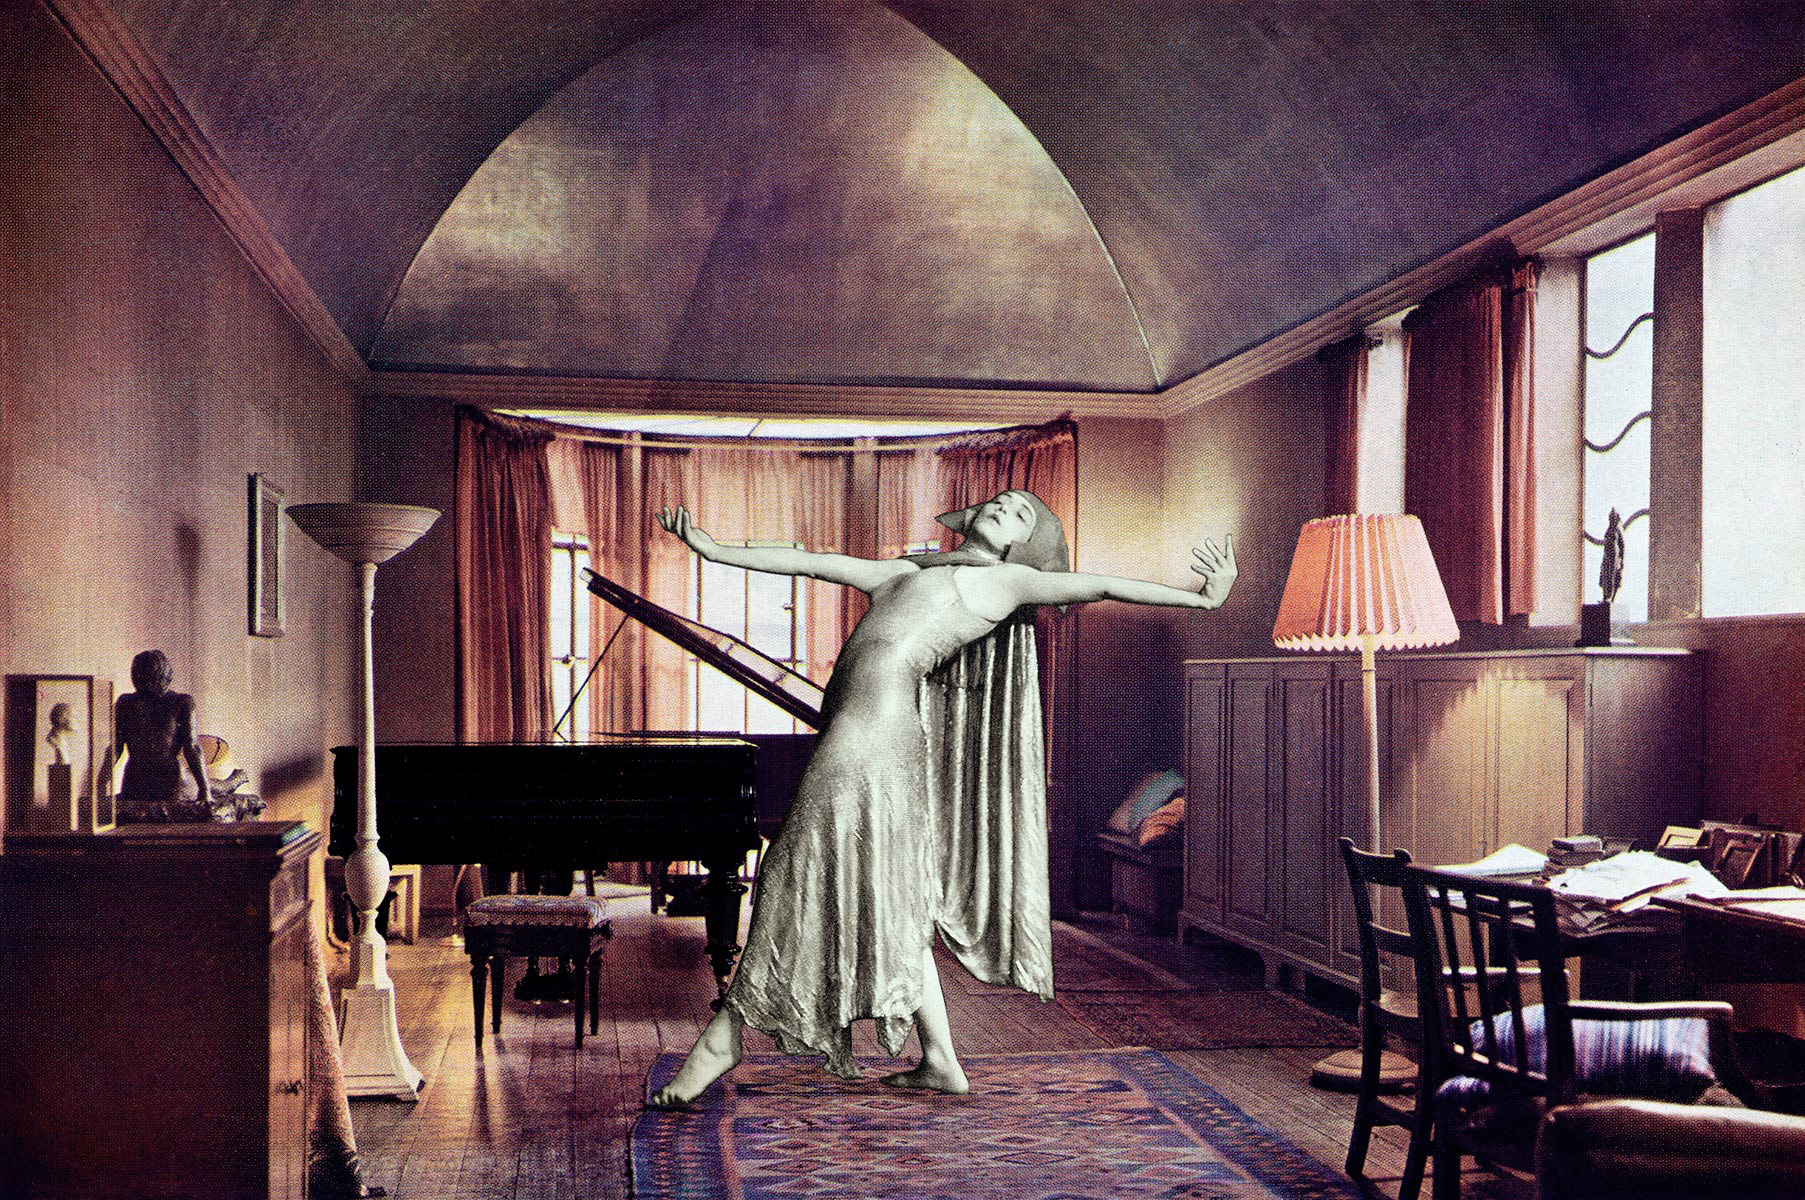 Mary Wigman dances in a music room designed by Oliver Hill. The walls and ceiling are papered in gold leaf and varnished. The space is an interesting study in tones of beige, brown, and gold. The curved ceiling is designed for sound.